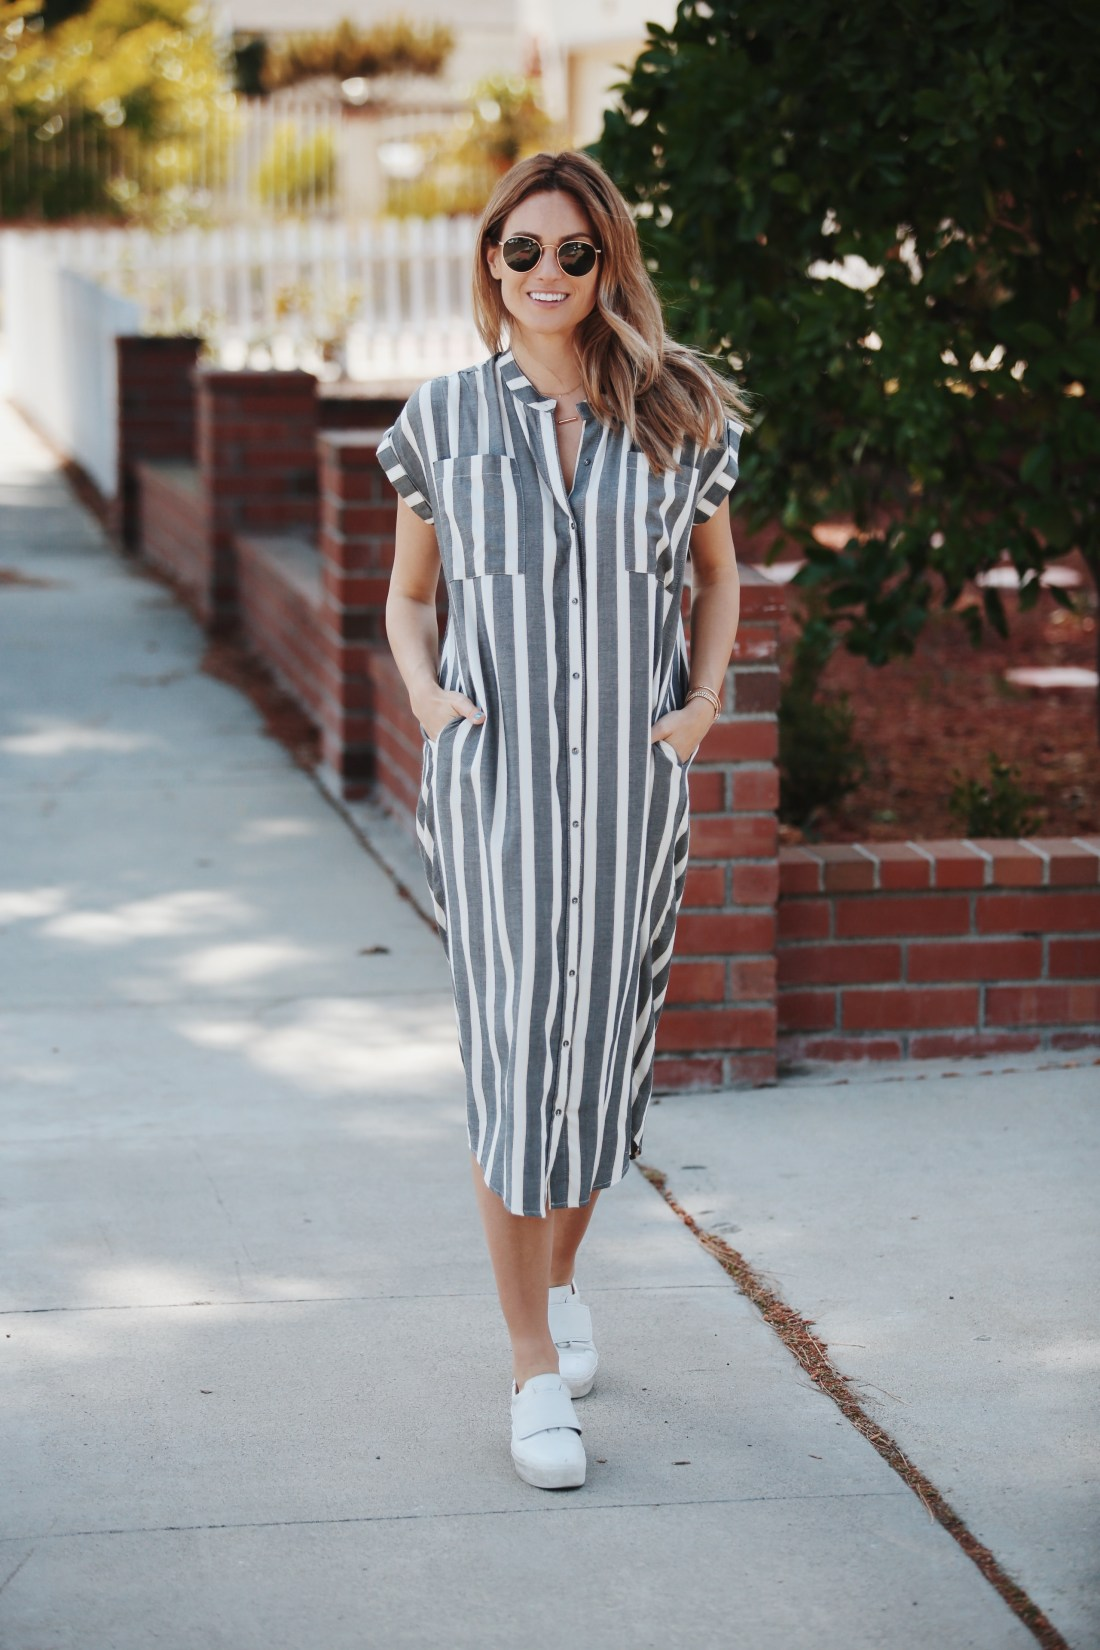 Shirt Dresses Under $100 | Knot Sisters Haze Shirt Dress | Palms to Pines